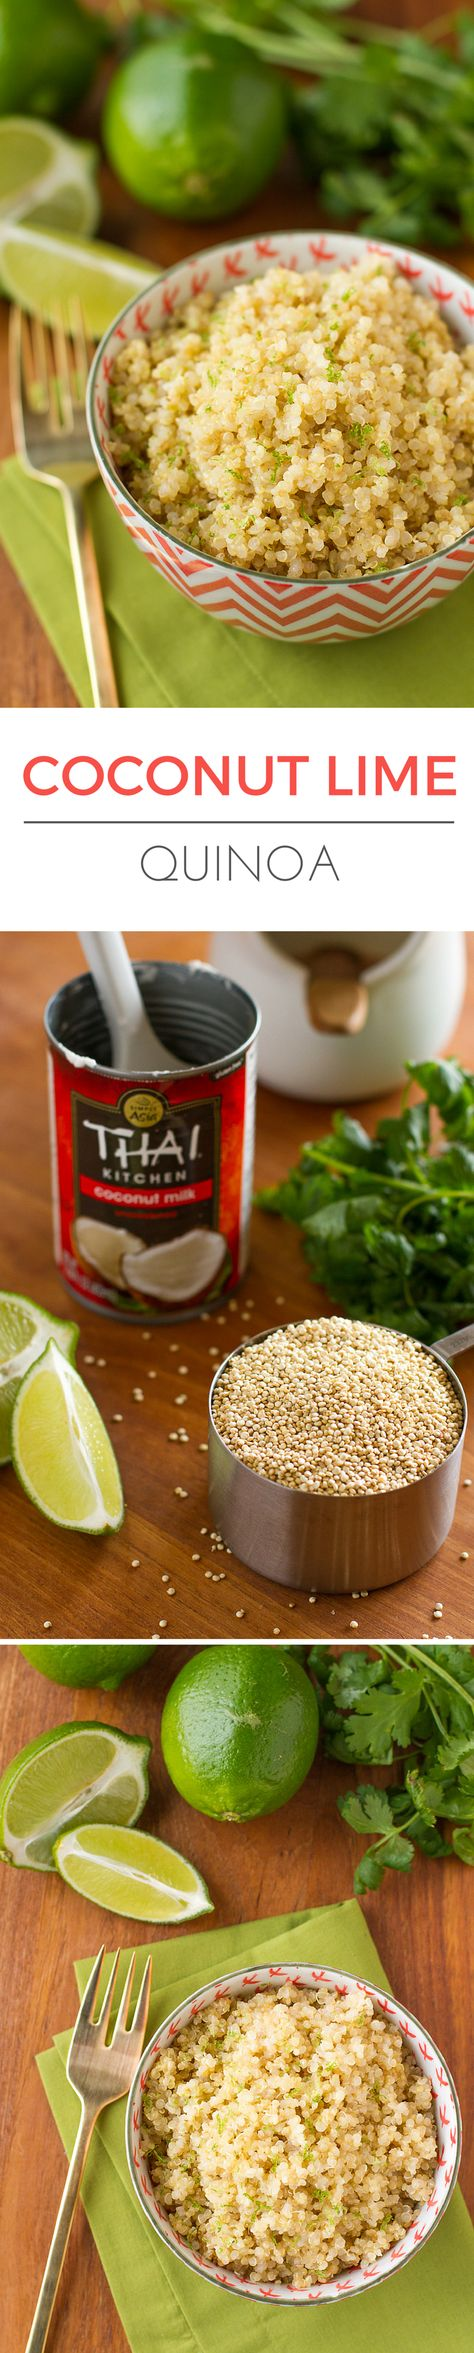 Eat like you're at a Thai spa exotic Coconut Lime Quinoa -- 3 ingredients and insanely easy prep (use your rice cooker!) make this delicious quinoa recipe a go-to weeknight side dish. Total winner! | via @Tara Kuczykowski on unsophisticook.com